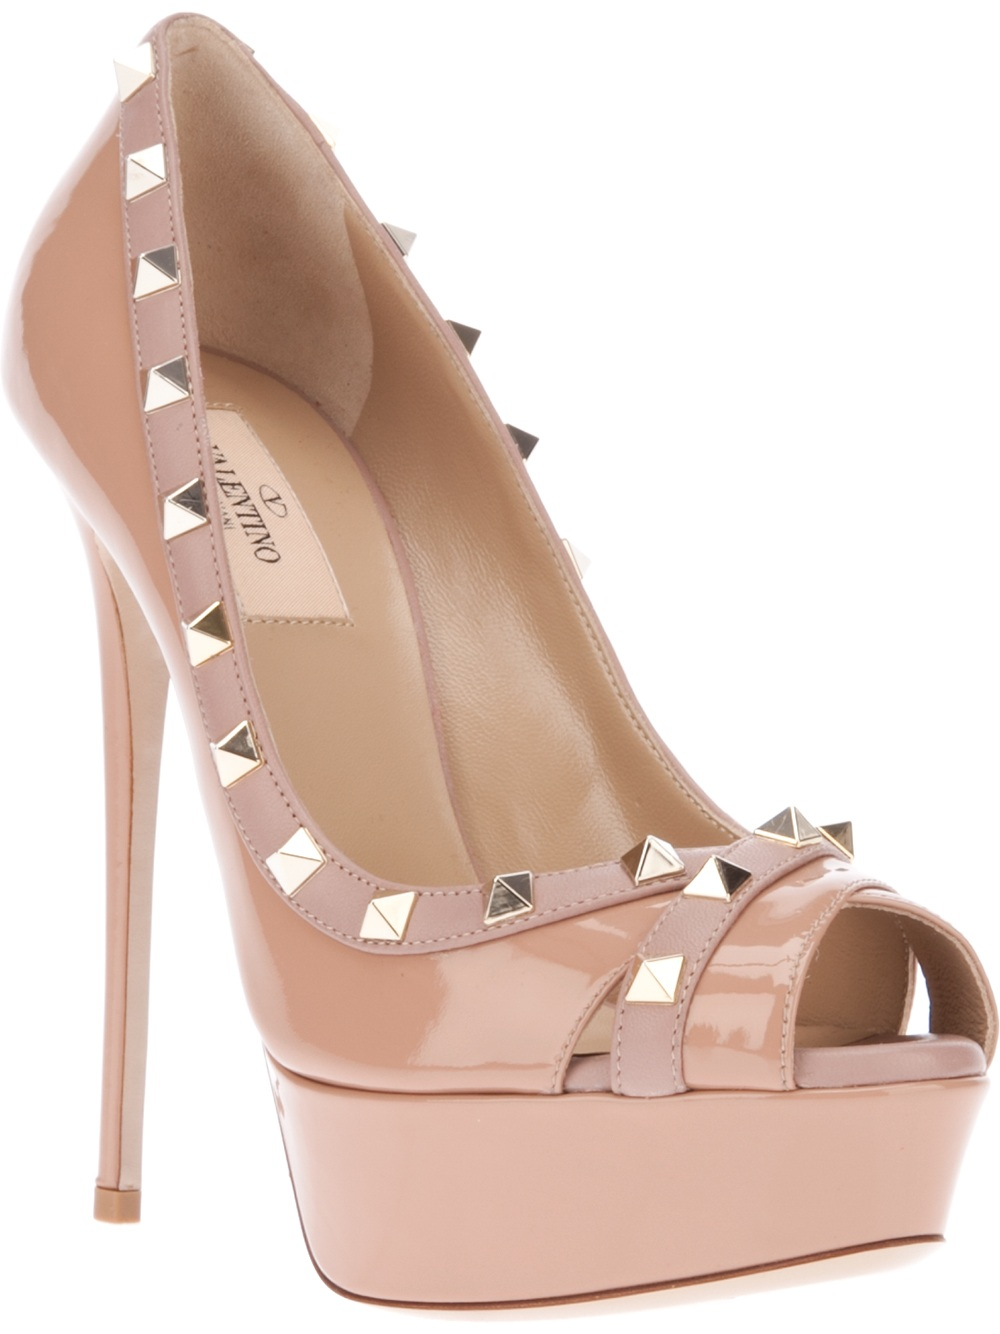 0ba2e62df38 Lyst - Valentino Studded Peep Toe Pump in Natural